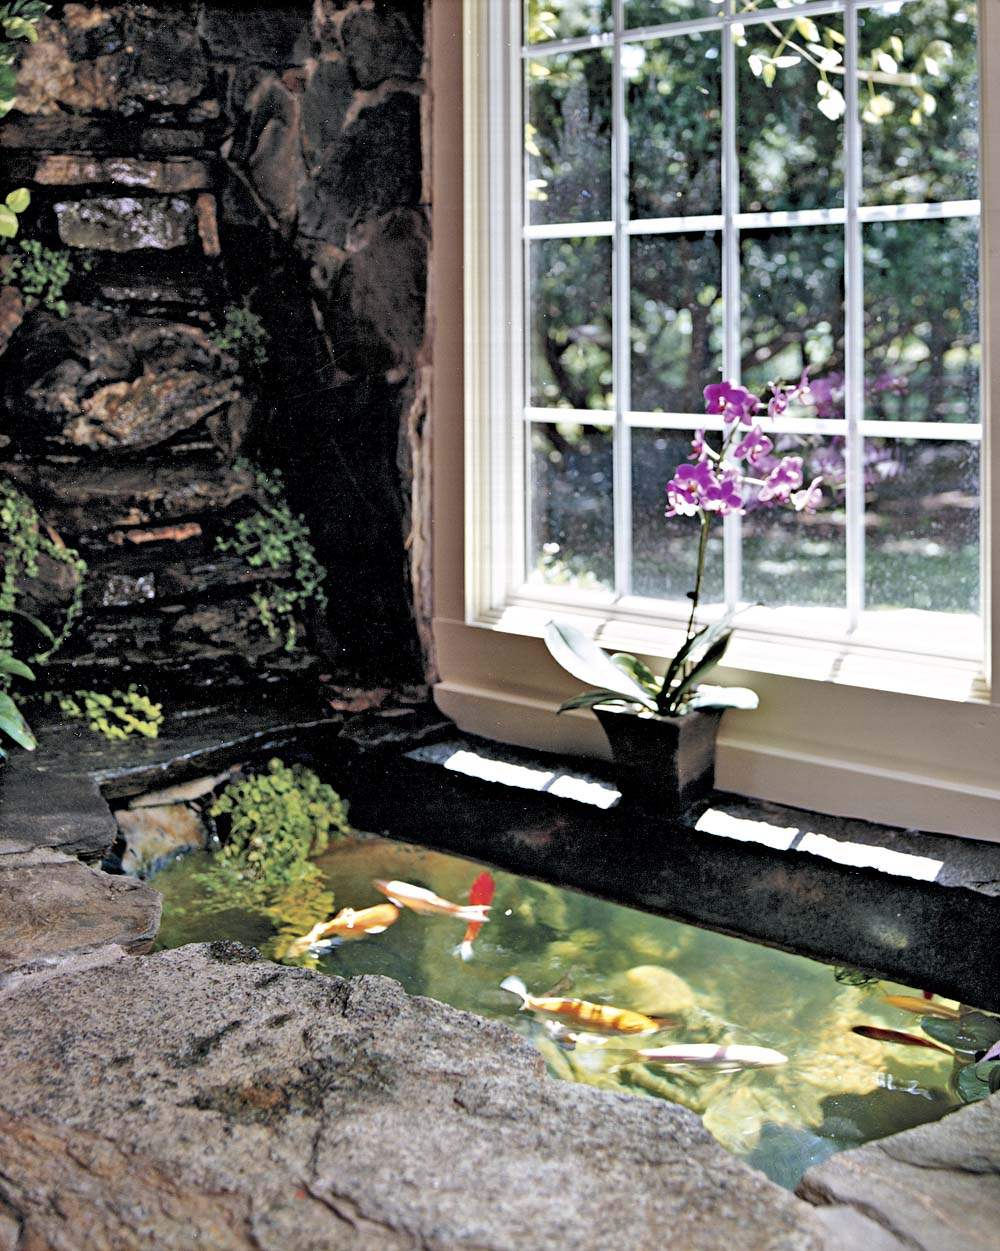 Do it yourself indoor outdoor koi pond for Indoor fish pond ideas